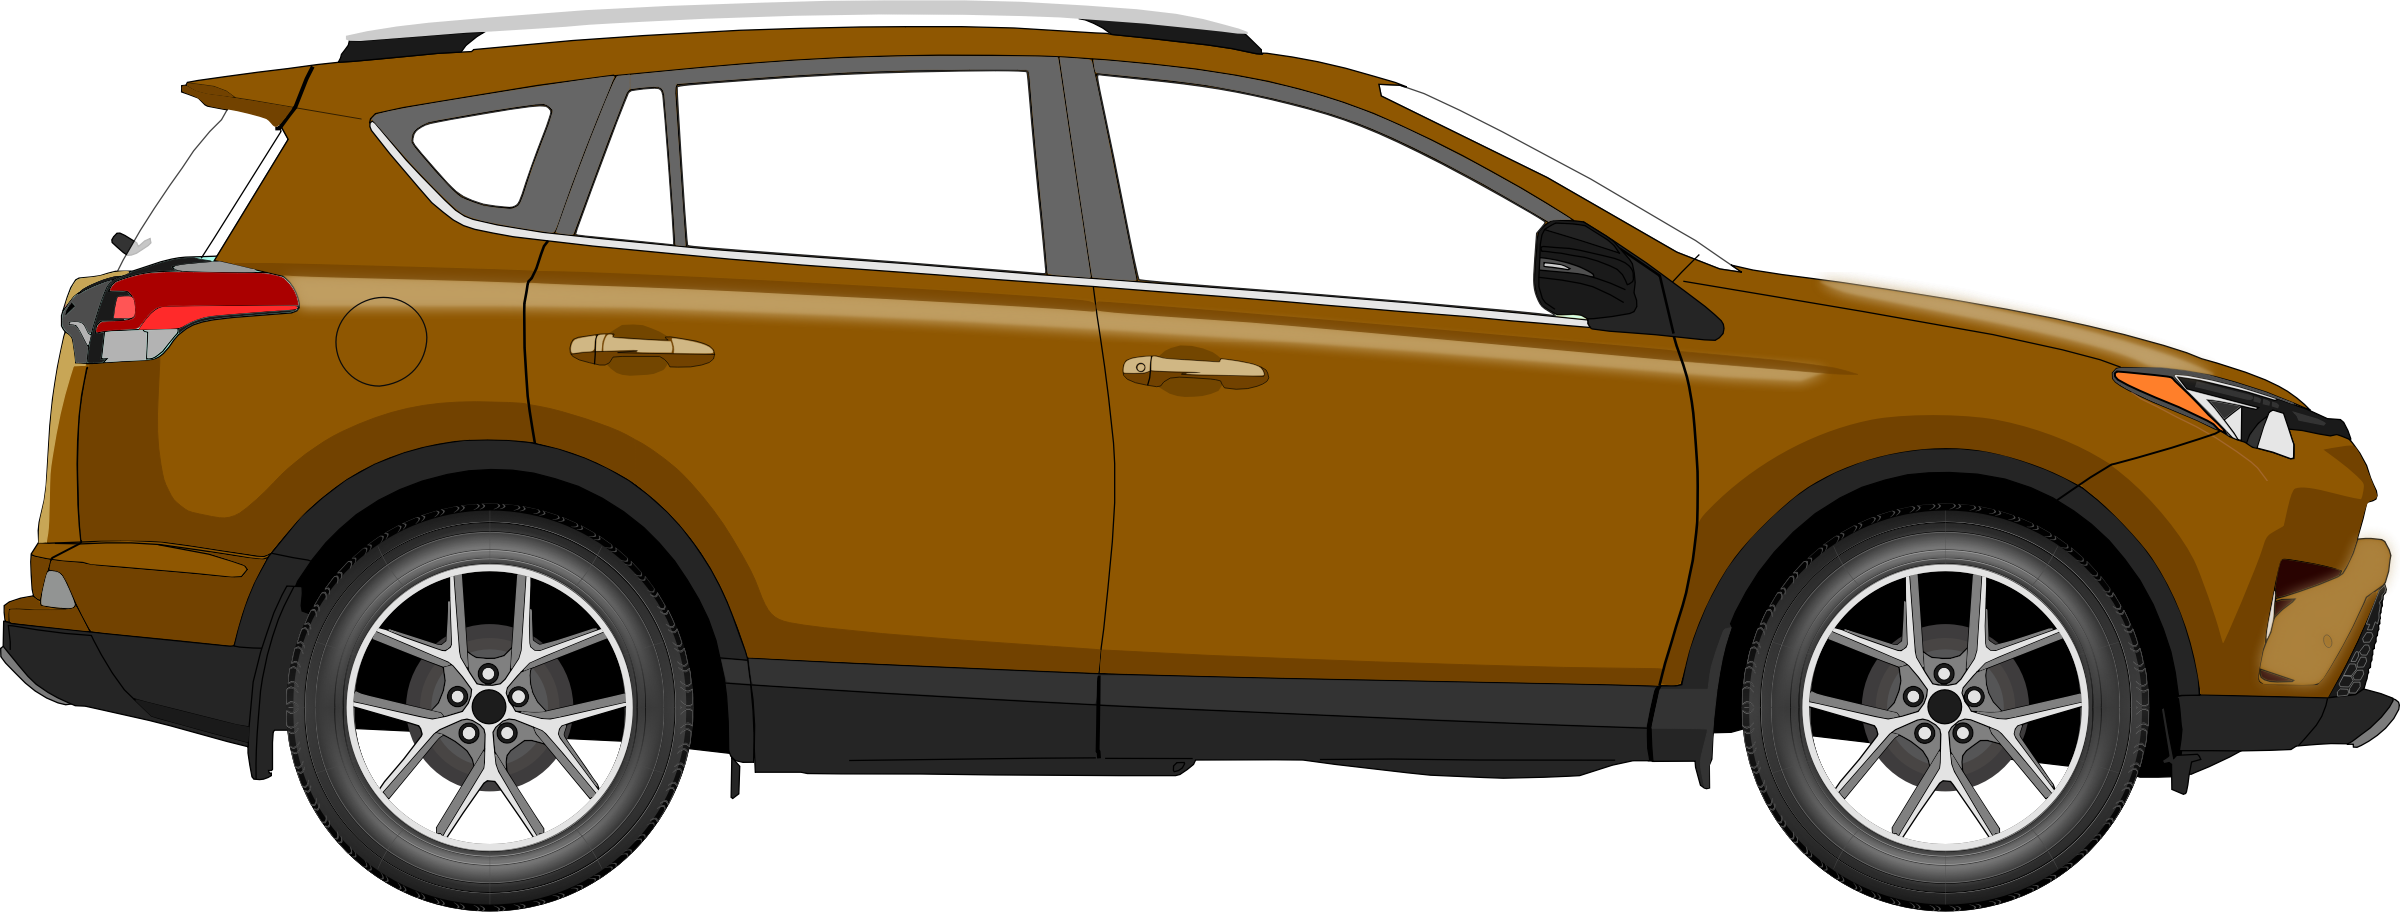 Car 14 (brown) by Firkin